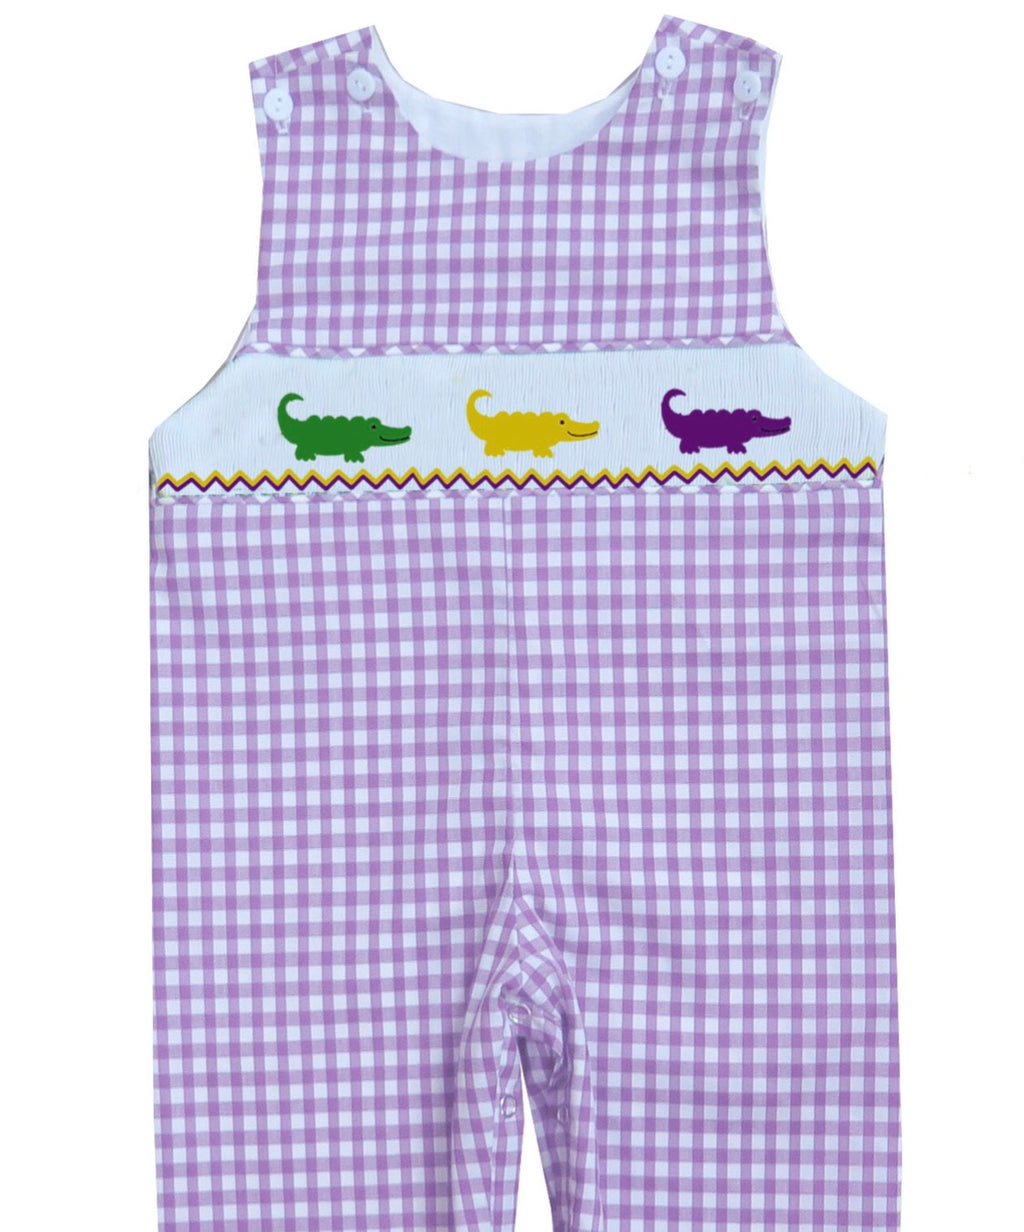 2019 Mardi Gras Alligator Gingham JonJon